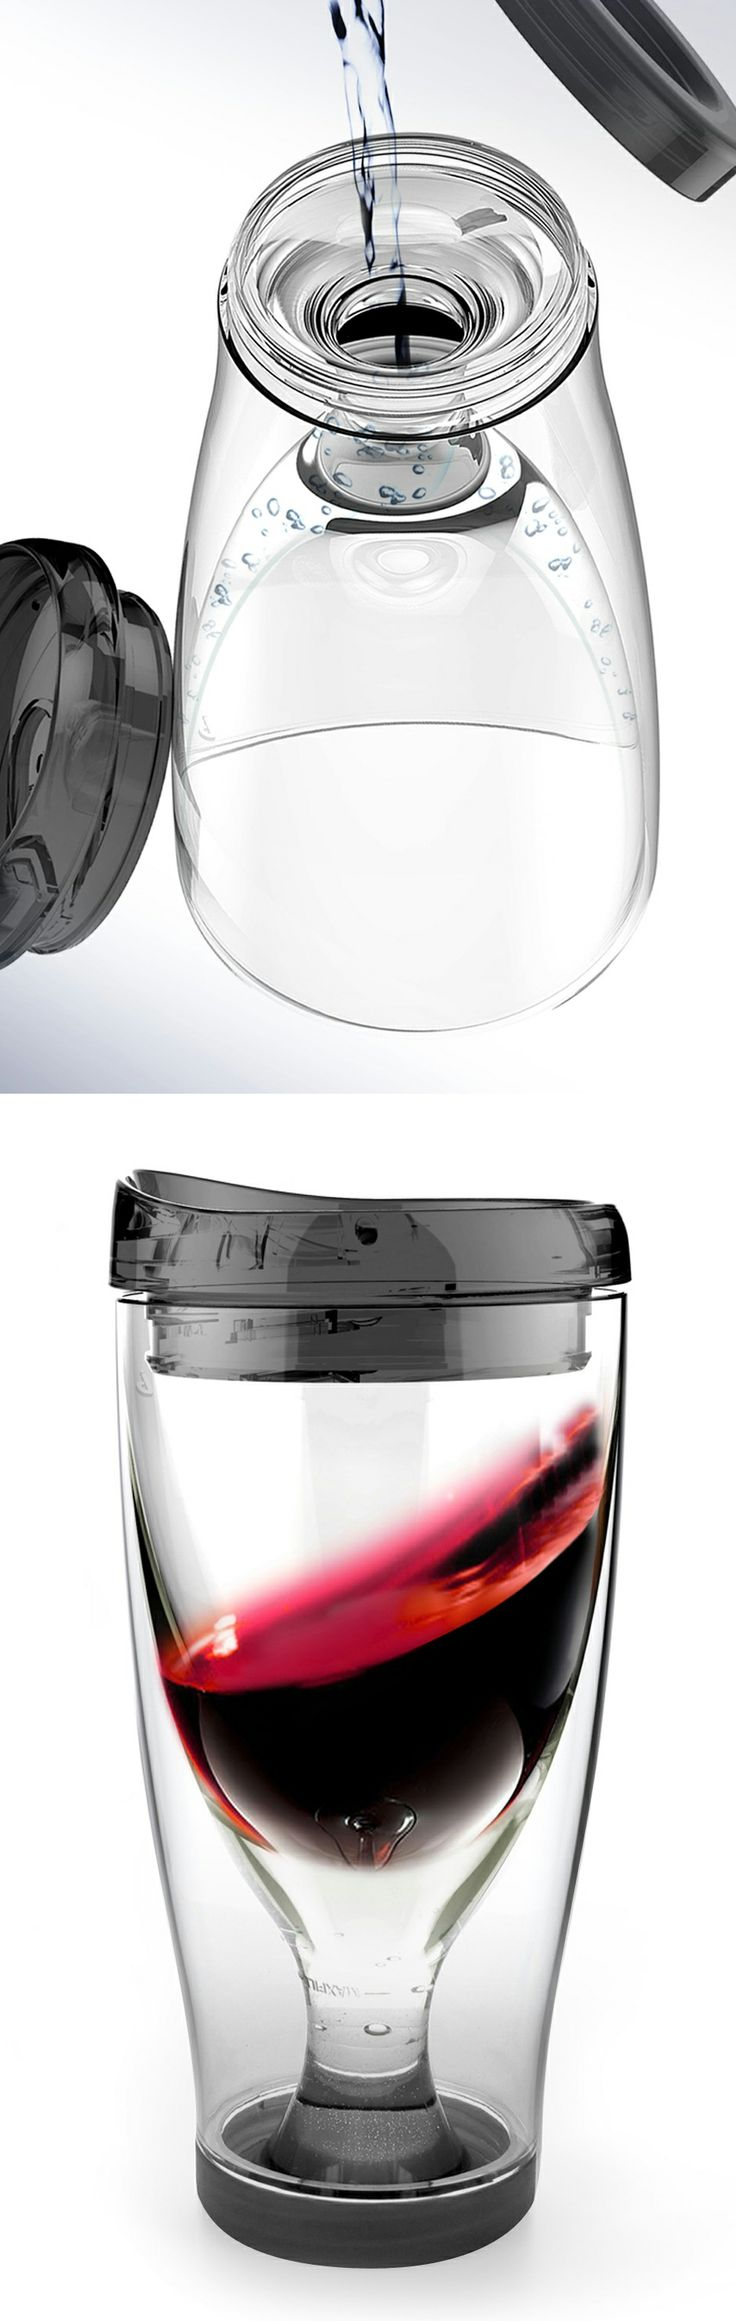 Wine 2 go travel cup // simply fill the bottom with water and freeze to keep your vino chilled in ice without watering it down! Genius! #product_design